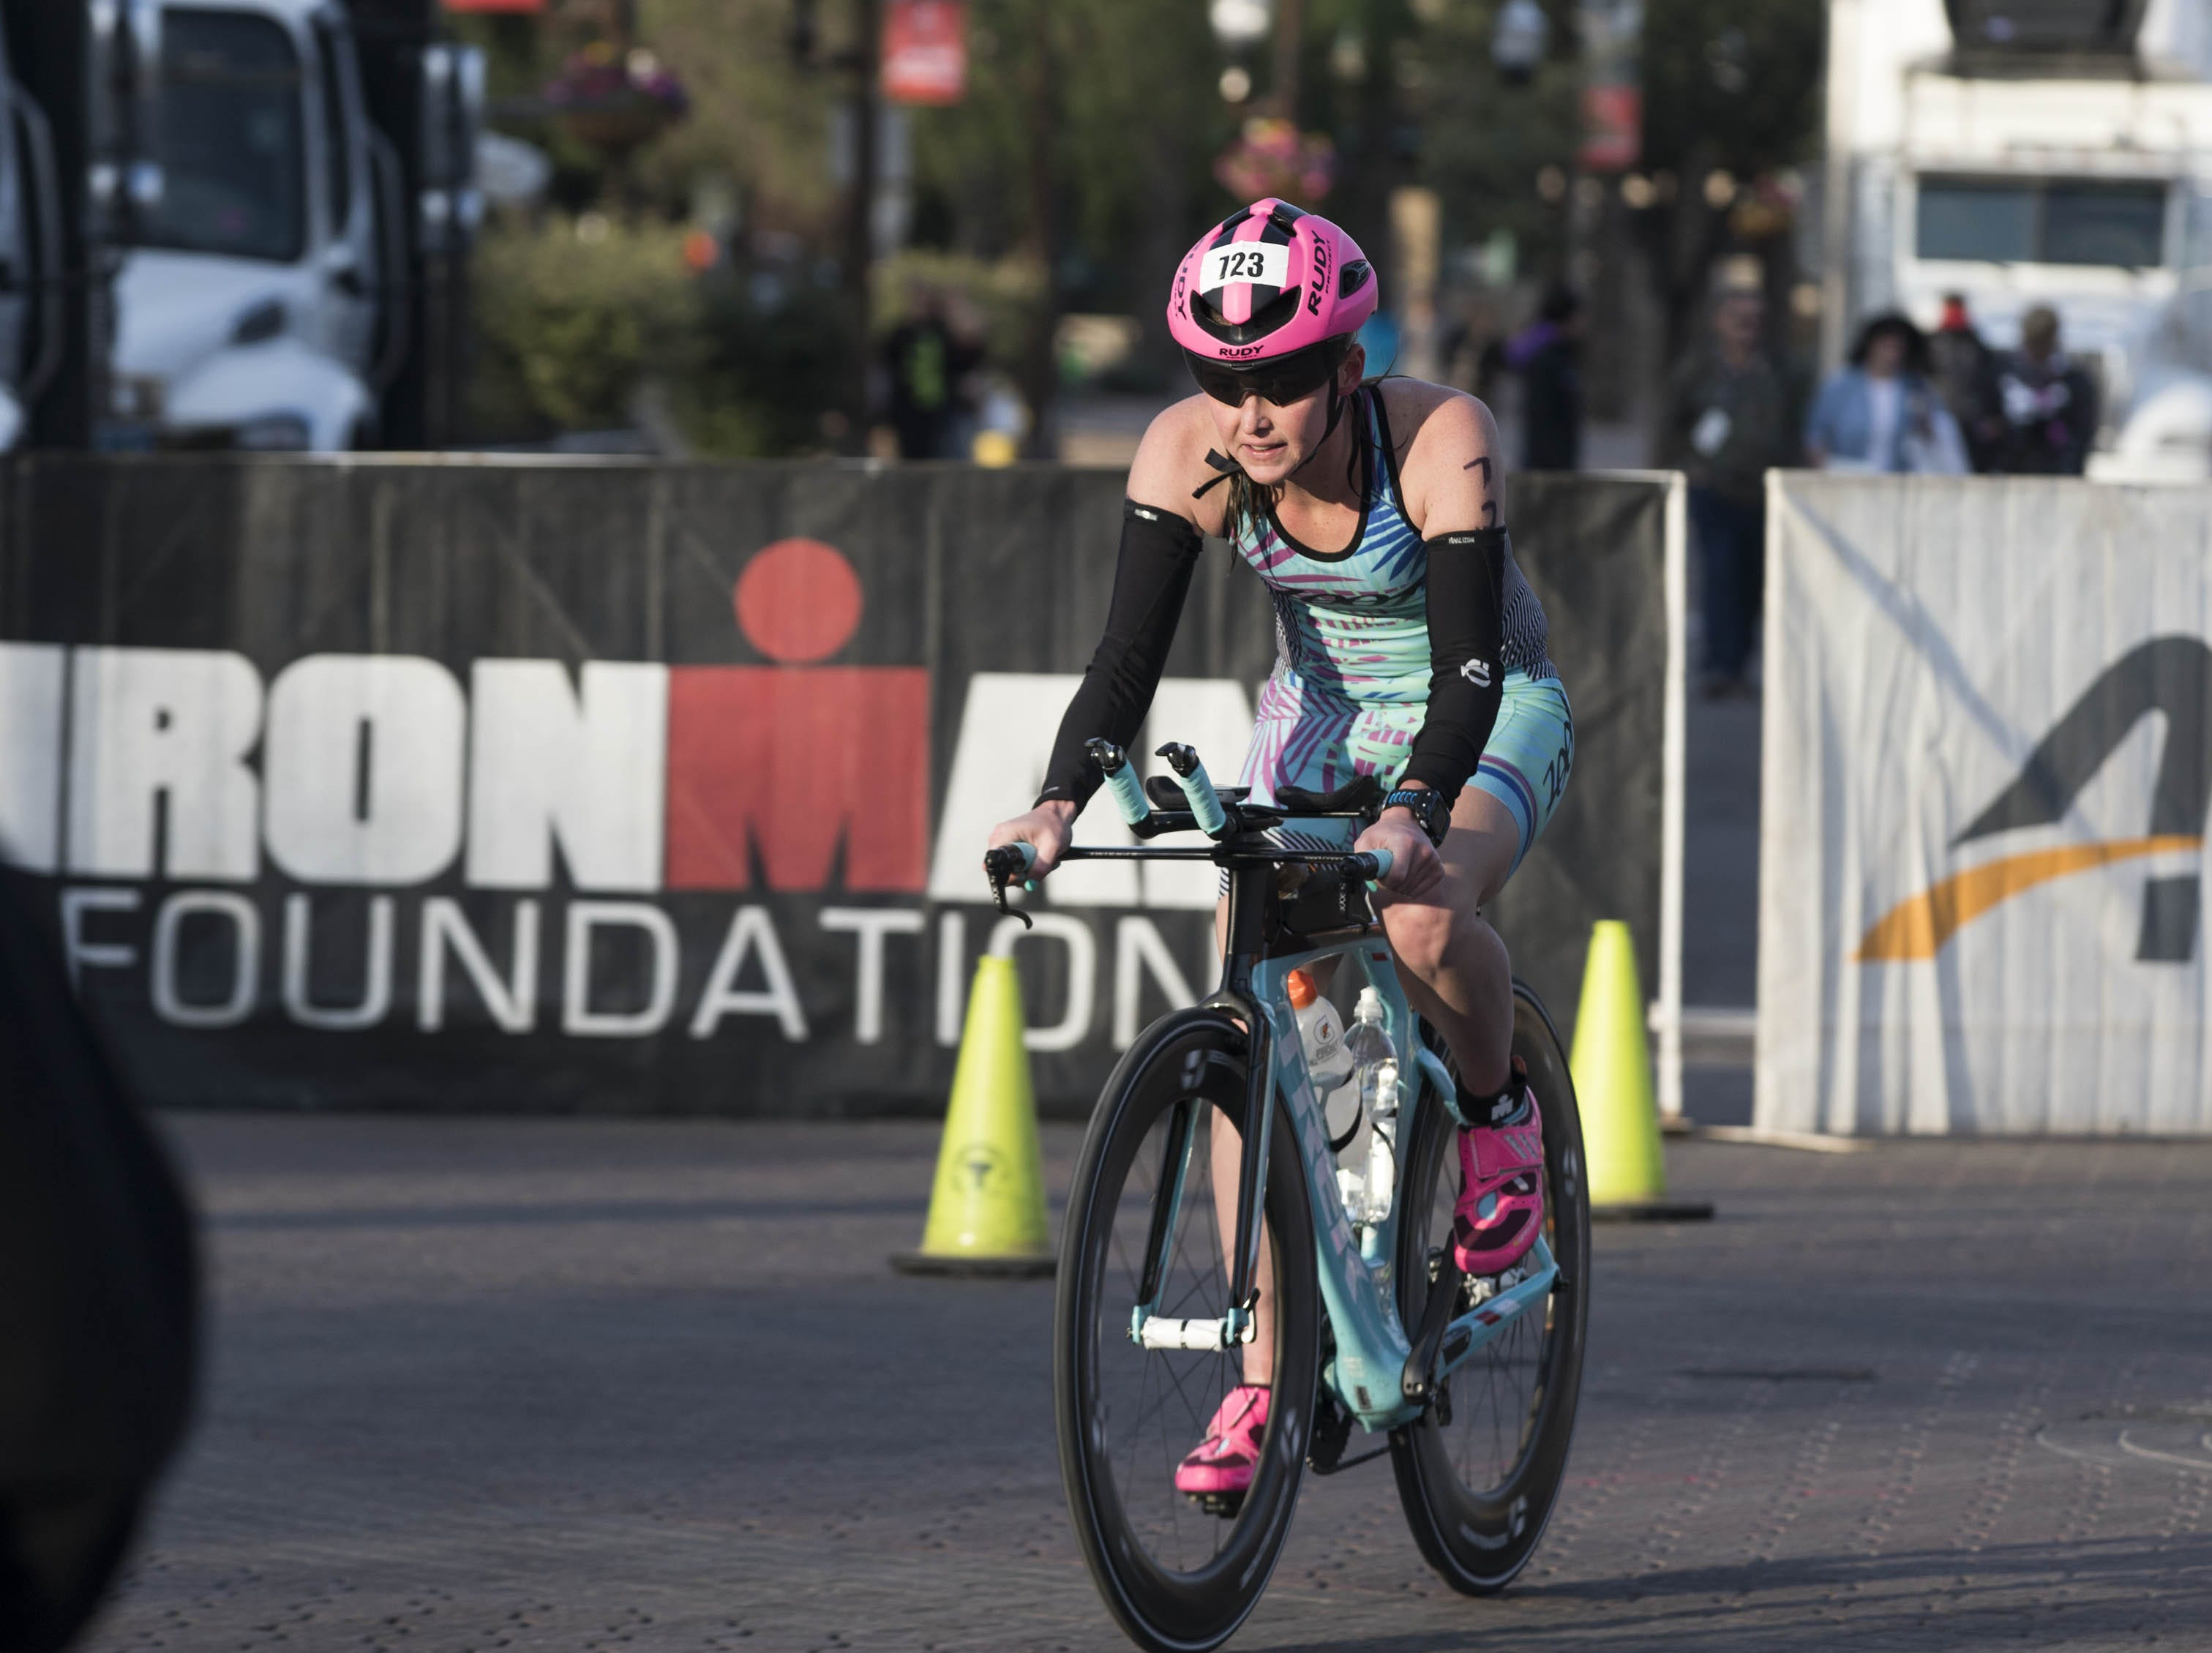 An Ironman competitor starts the bike portion of the race during the Tempe Ironman at Tempe Town Lake Nov.18, 2018.